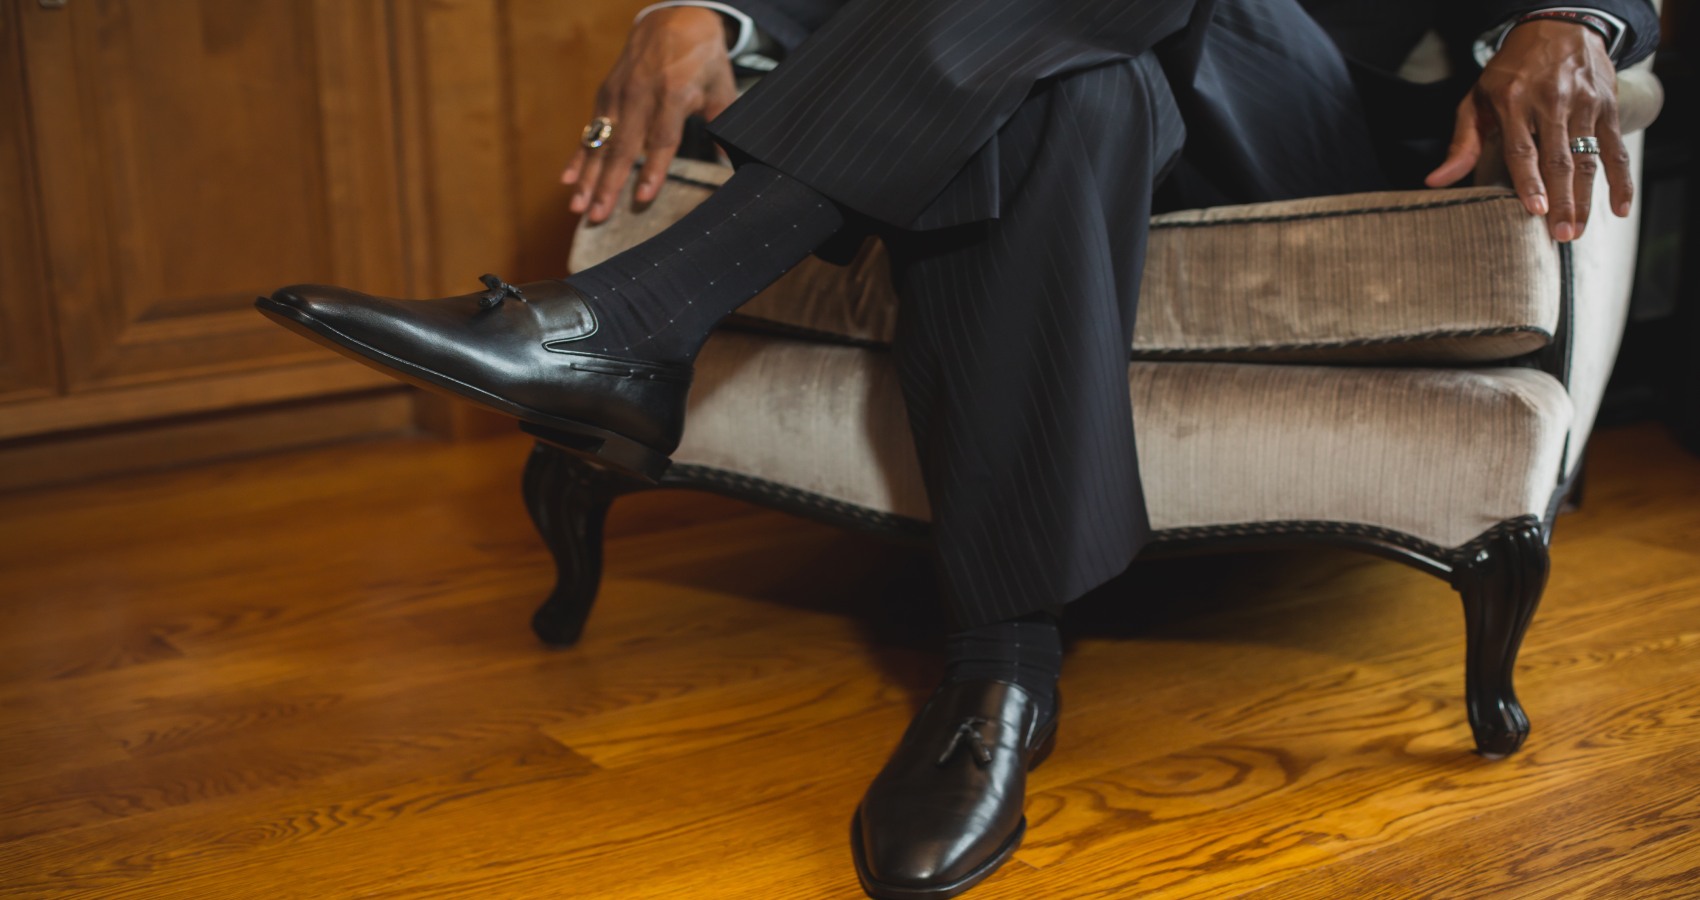 Former NBA Star Antonio Daniels sporting the M Andrews Sartorial Luxury Tassel Loafer in Black